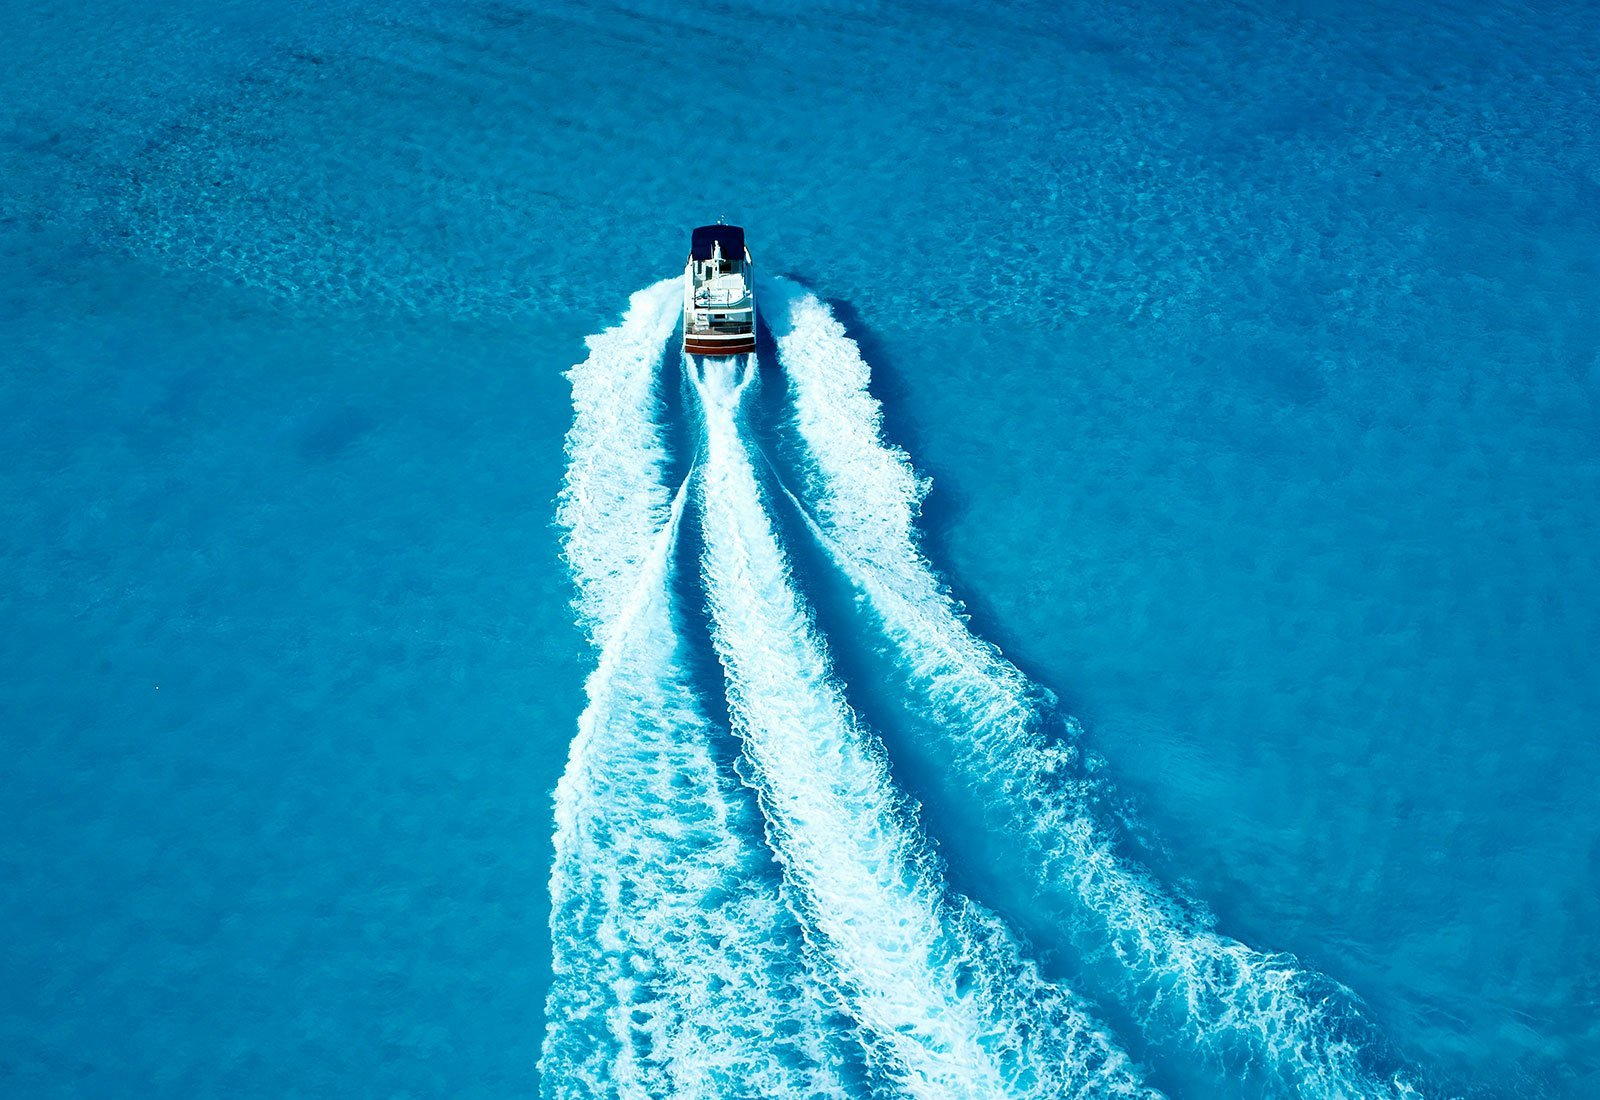 Top view of a motor boat